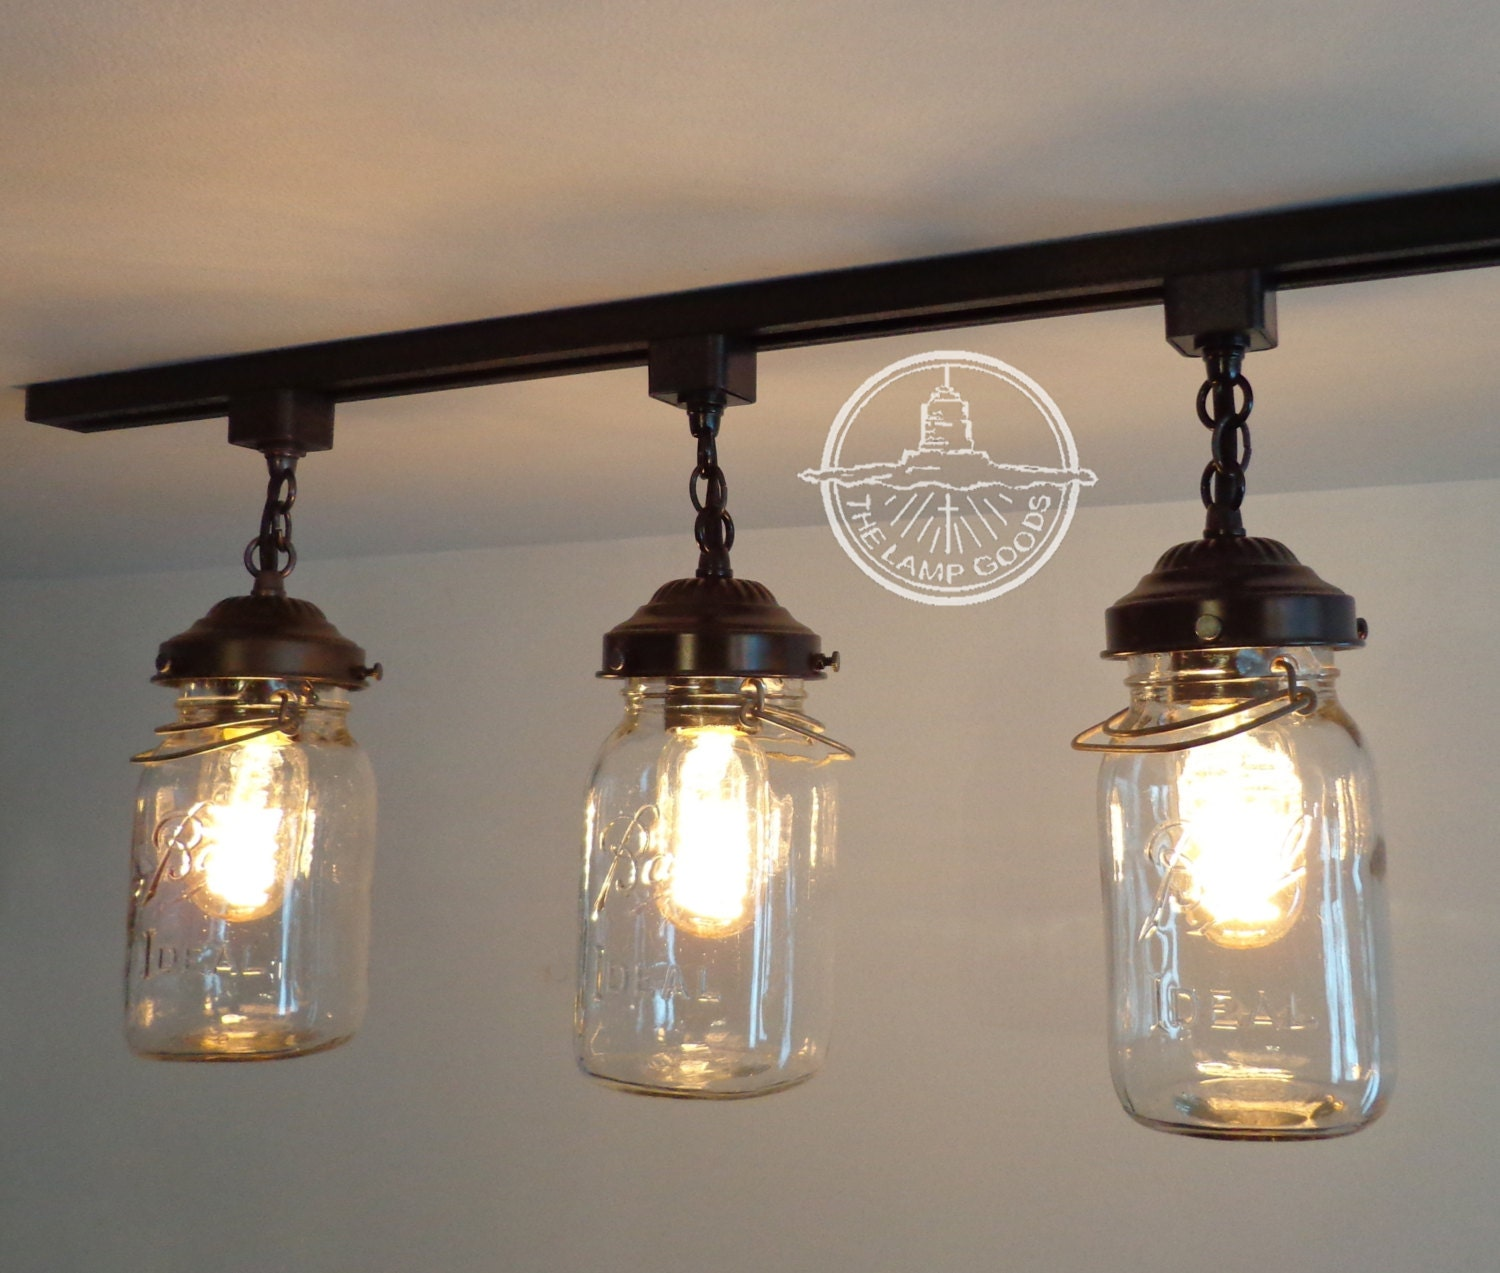 Flush mount ceiling light mason jar track lighting fixture zoom arubaitofo Gallery